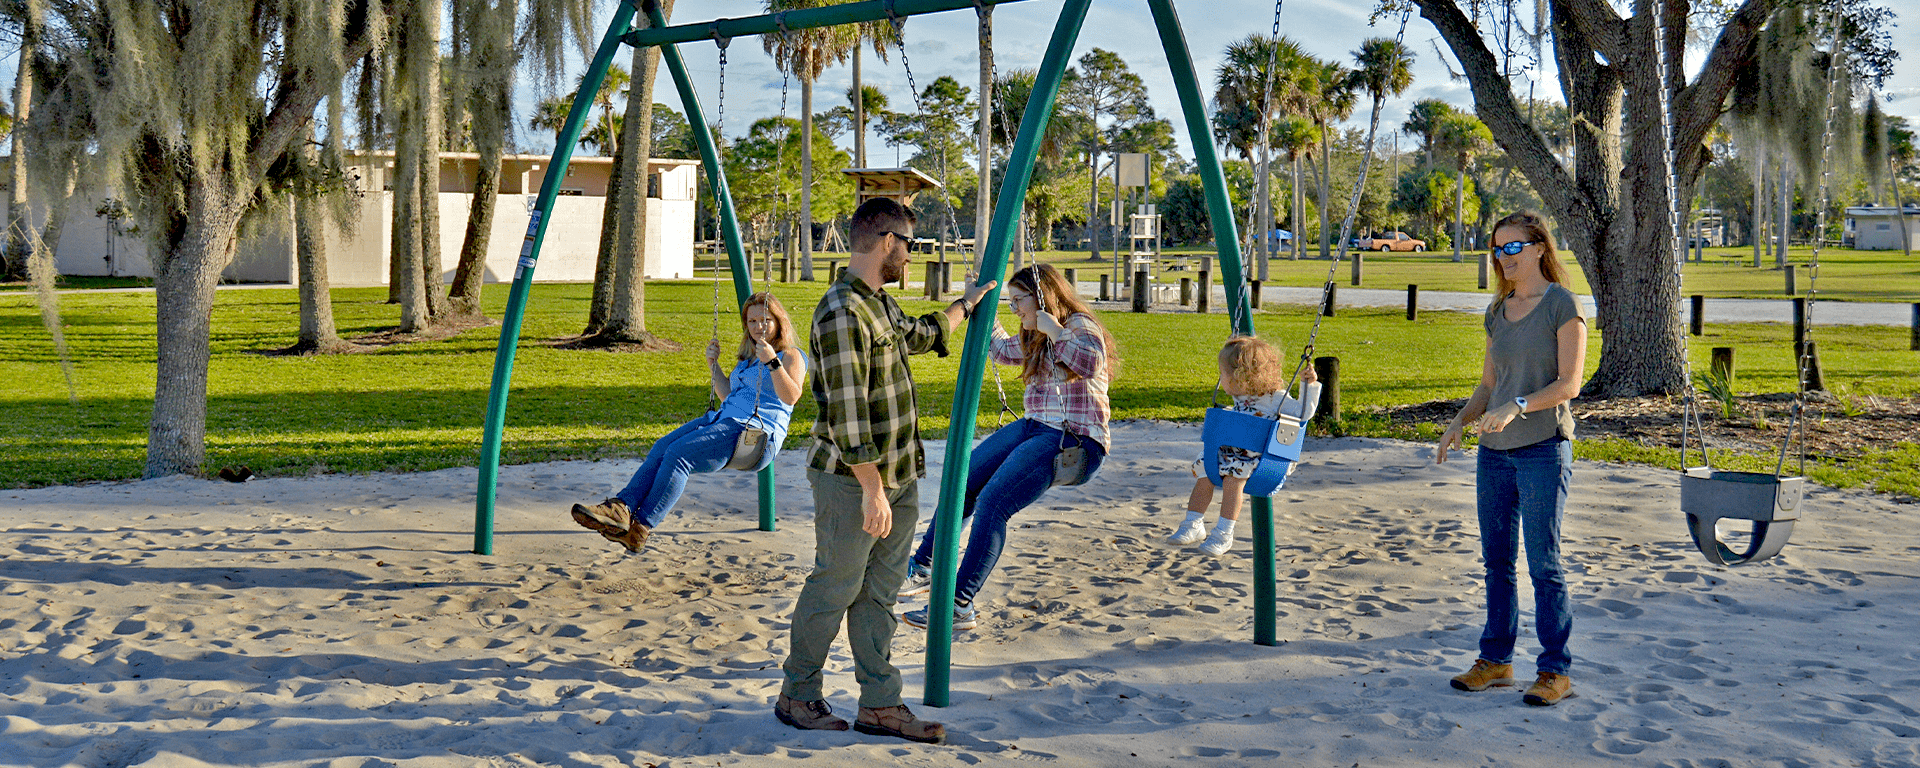 A family enjoying the playground at Phipps Park